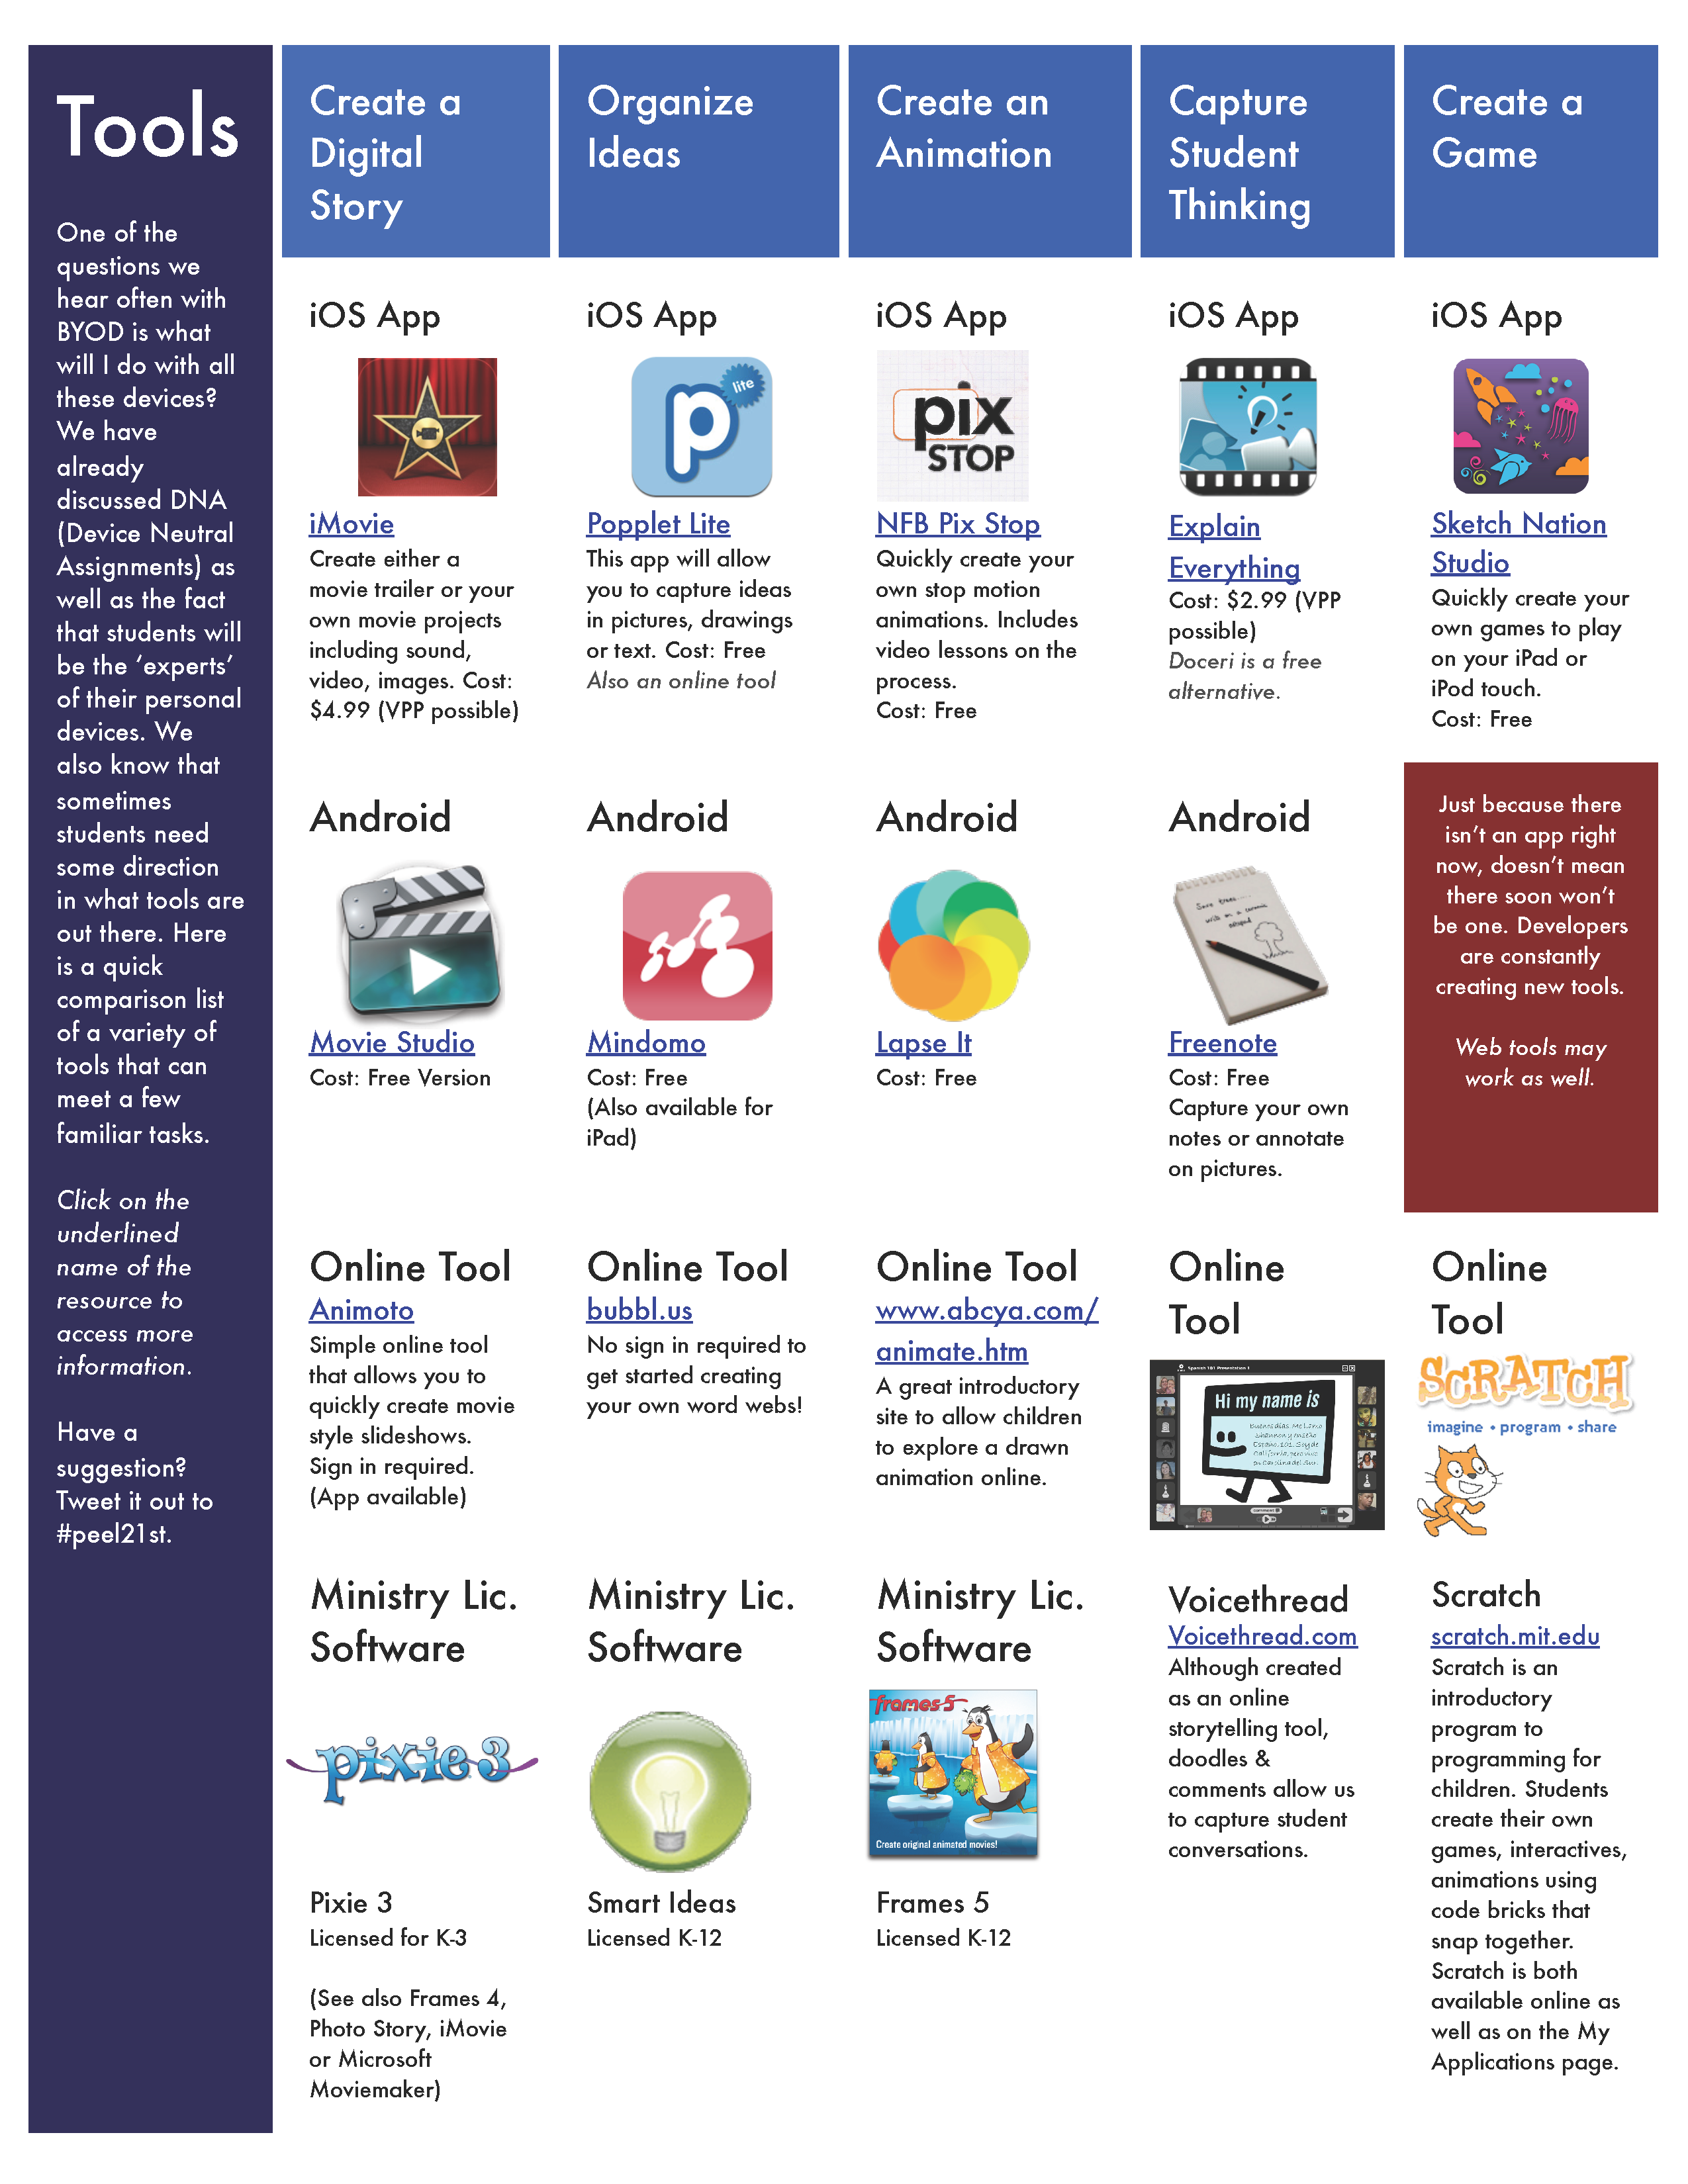 15 Excellent Apps for Learning Activities in BYOD Classrooms ~ Educational Technology and Mobile Learning